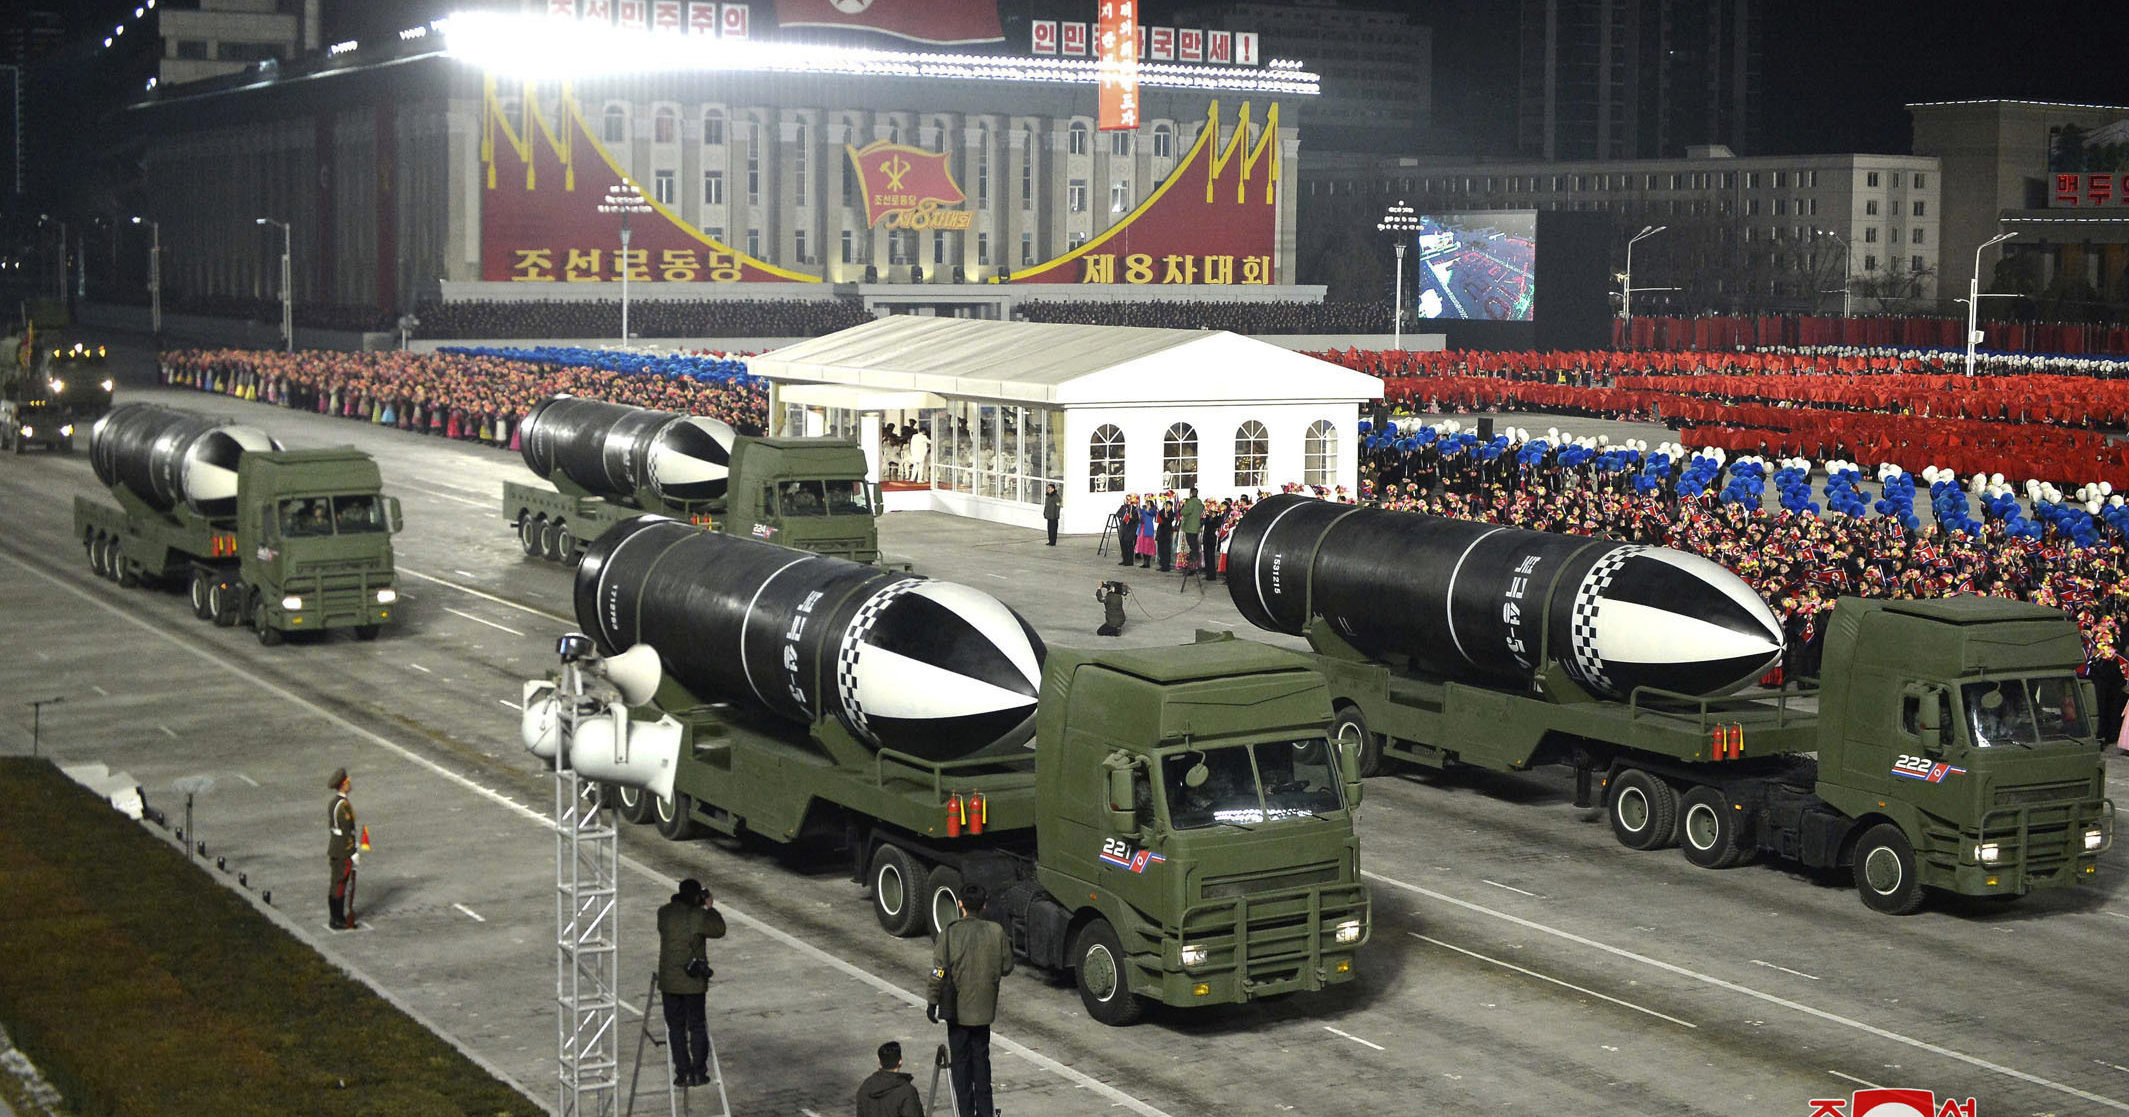 This photo provided by the North Korean government shows missiles during a military parade at Kim Il Sung Square in Pyongyang, North Korea, on Jan. 14, 2021.